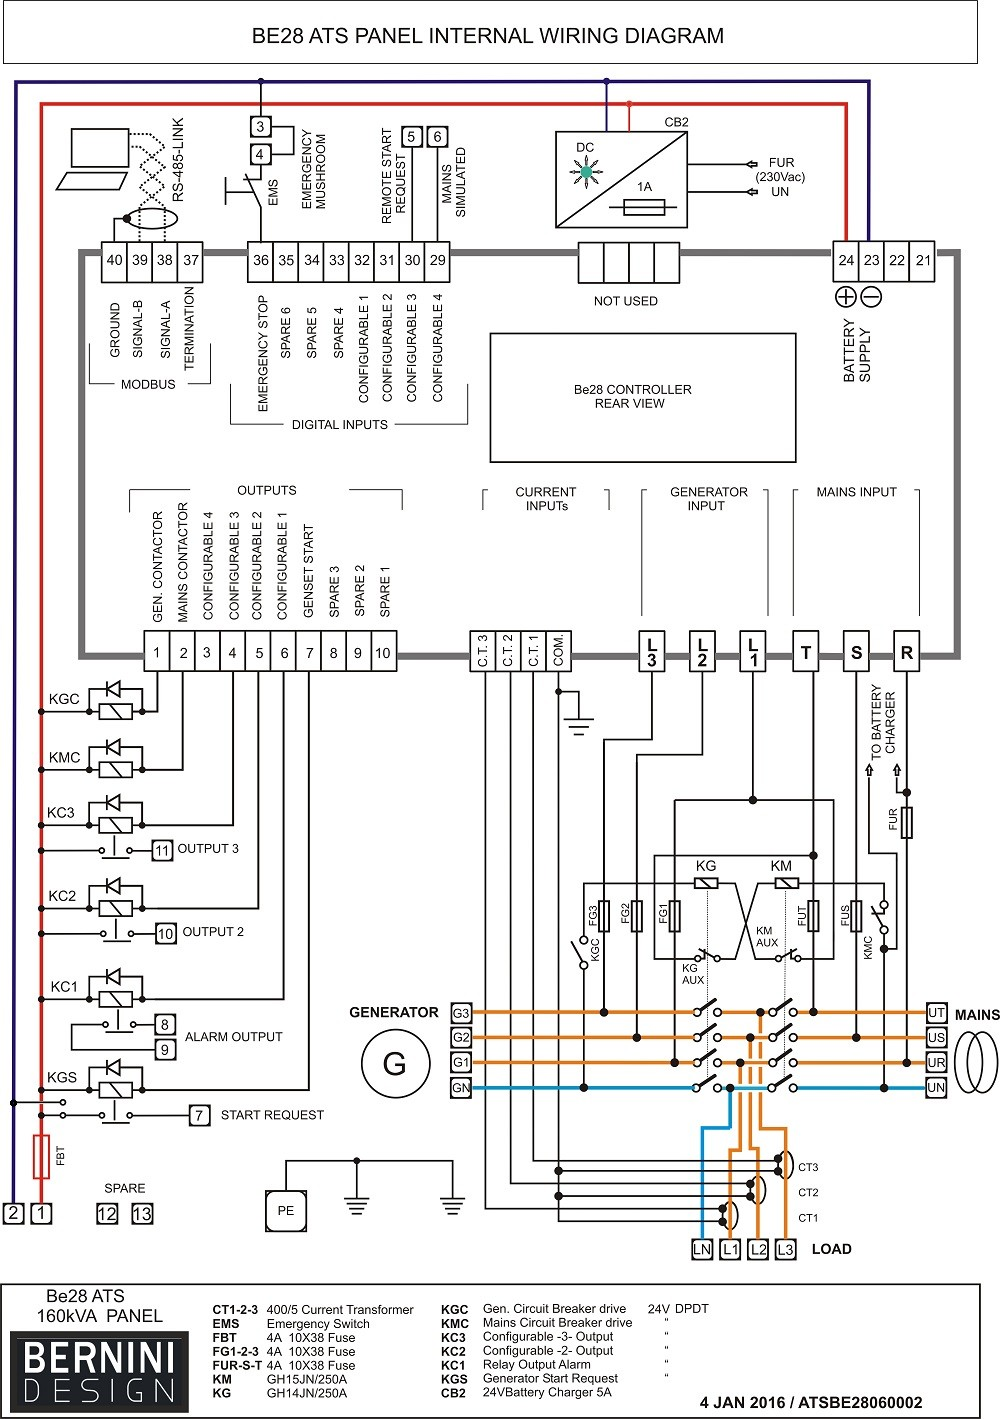 4k Onan Generator Wiring Diagram For A Kohler 7cm21 Rv Page 2 And Schematics Gro Artig Schaltplan Bilder Serie Source Wiki Wallpapers 2018 Rh Imagecloud Us